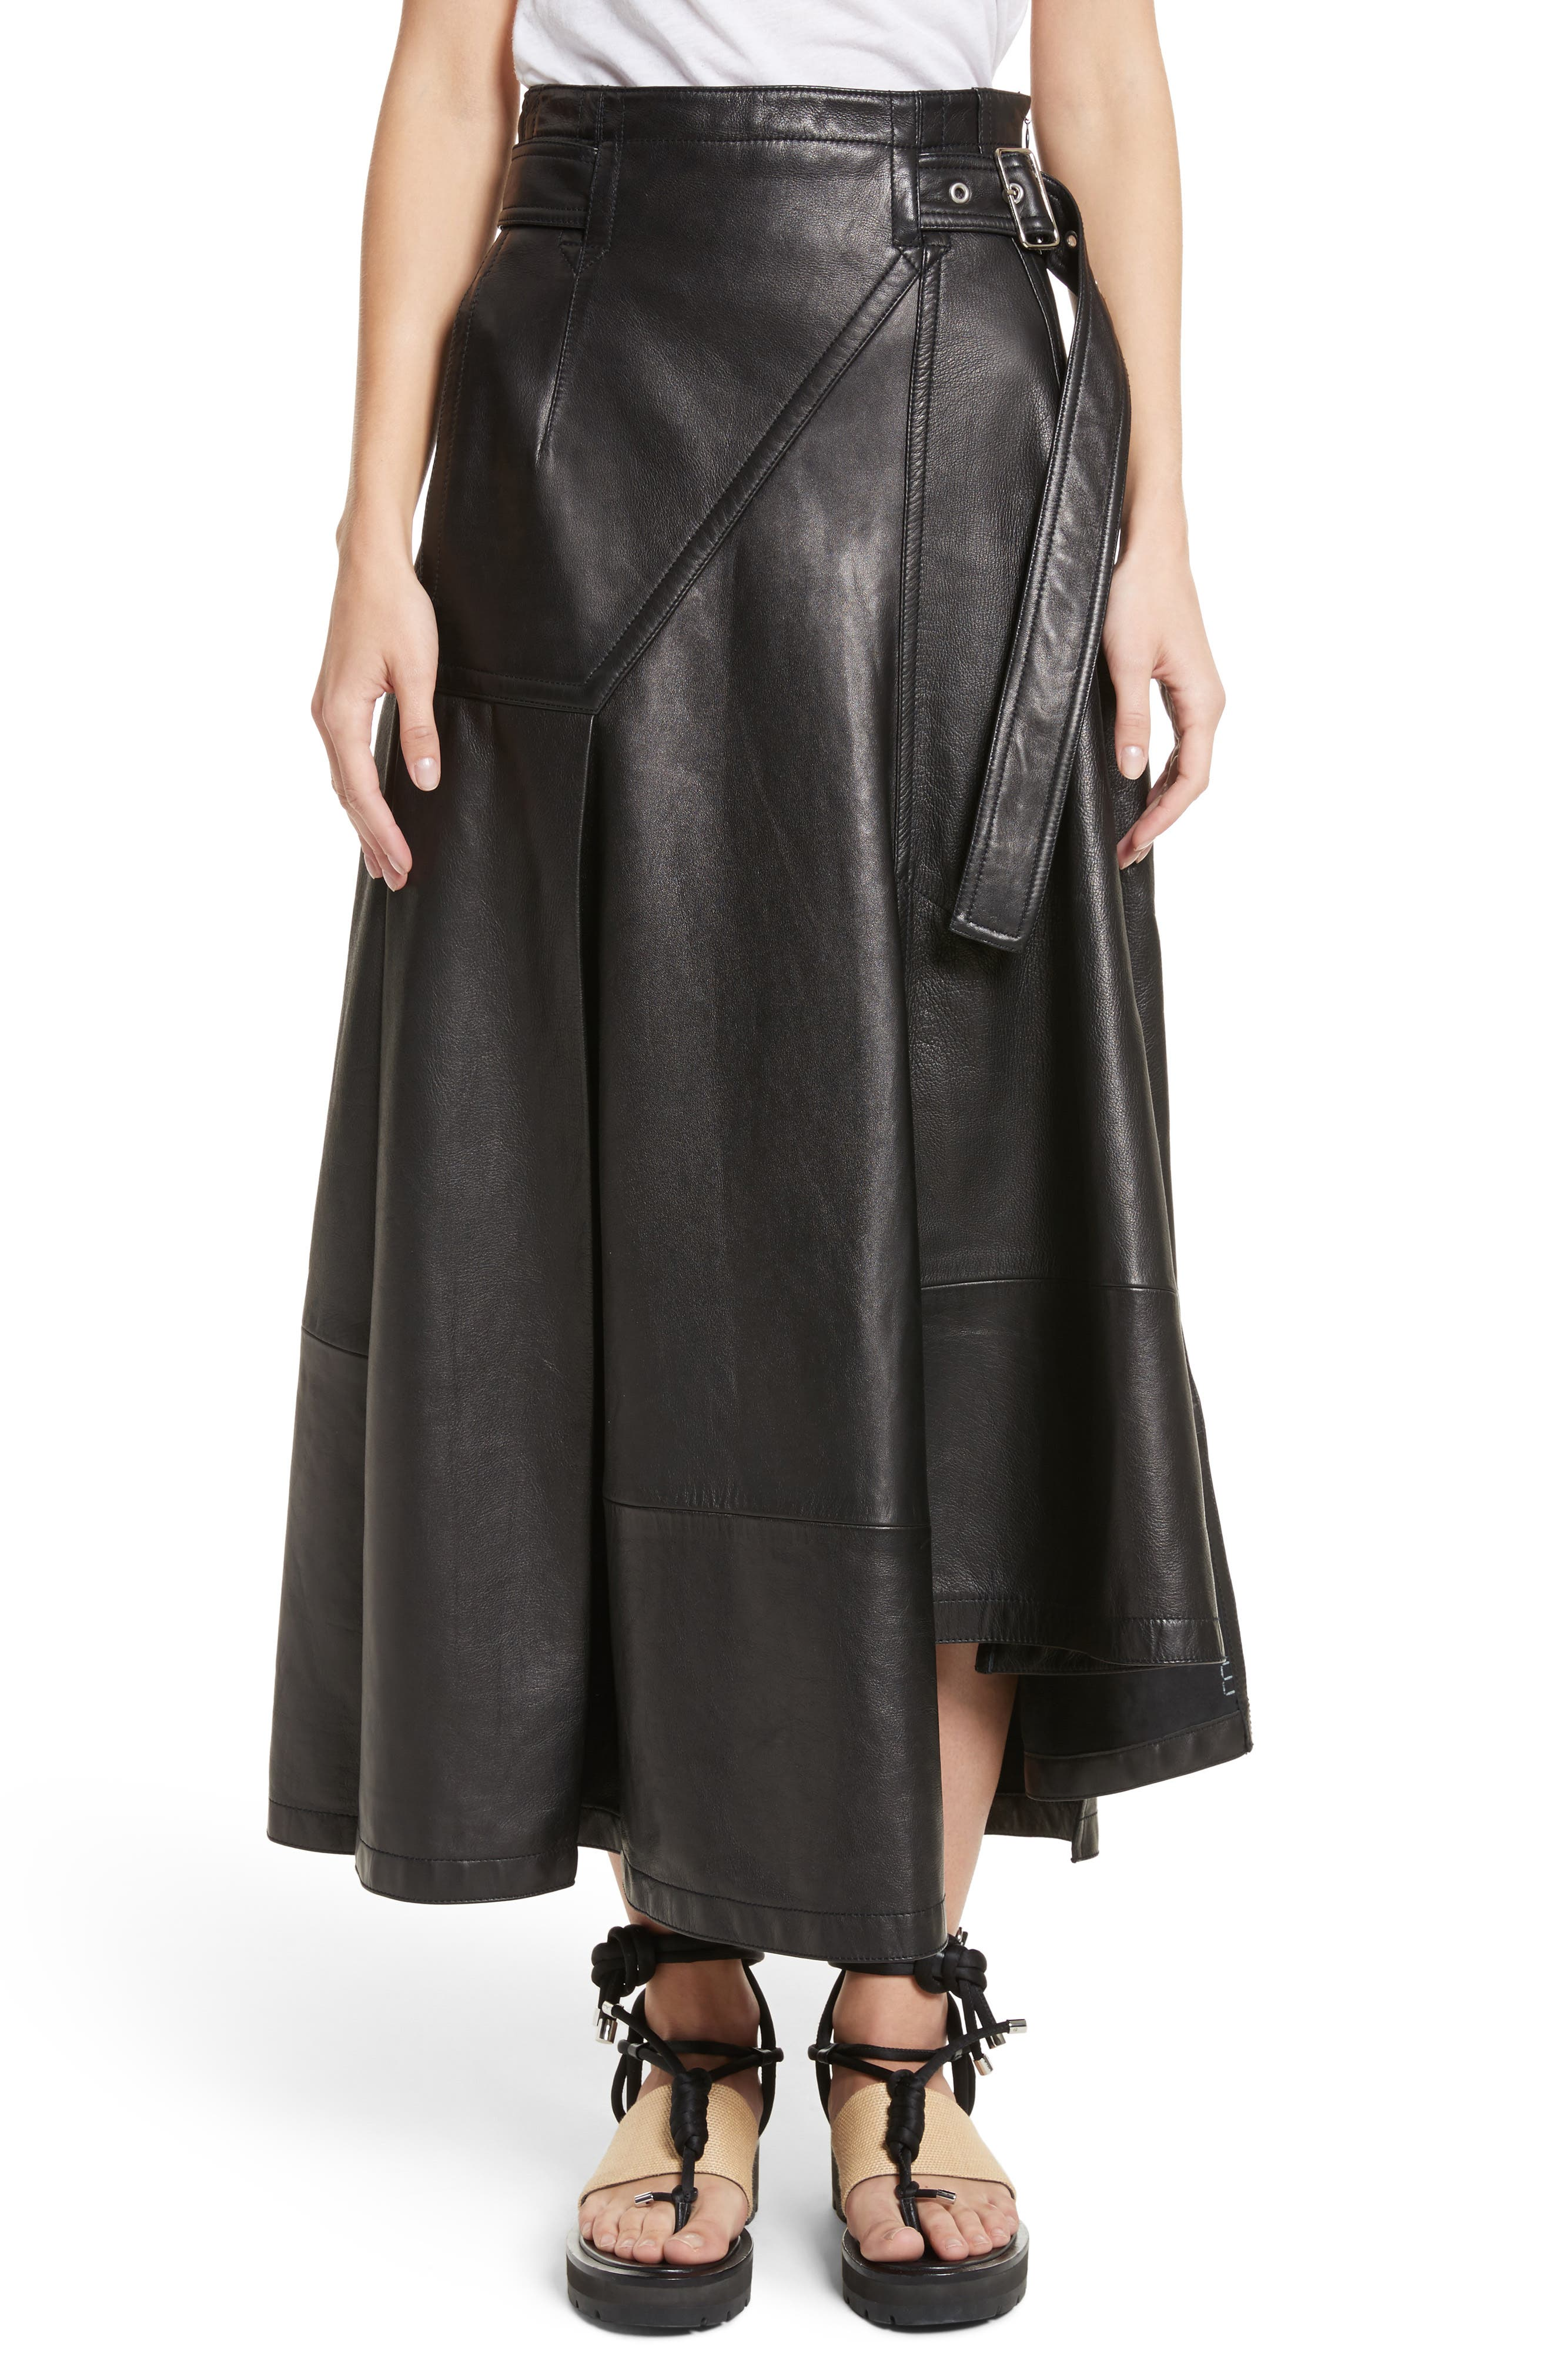 Alternate Image 1 Selected - 3.1 Phillip Lim Leather Utility Skirt